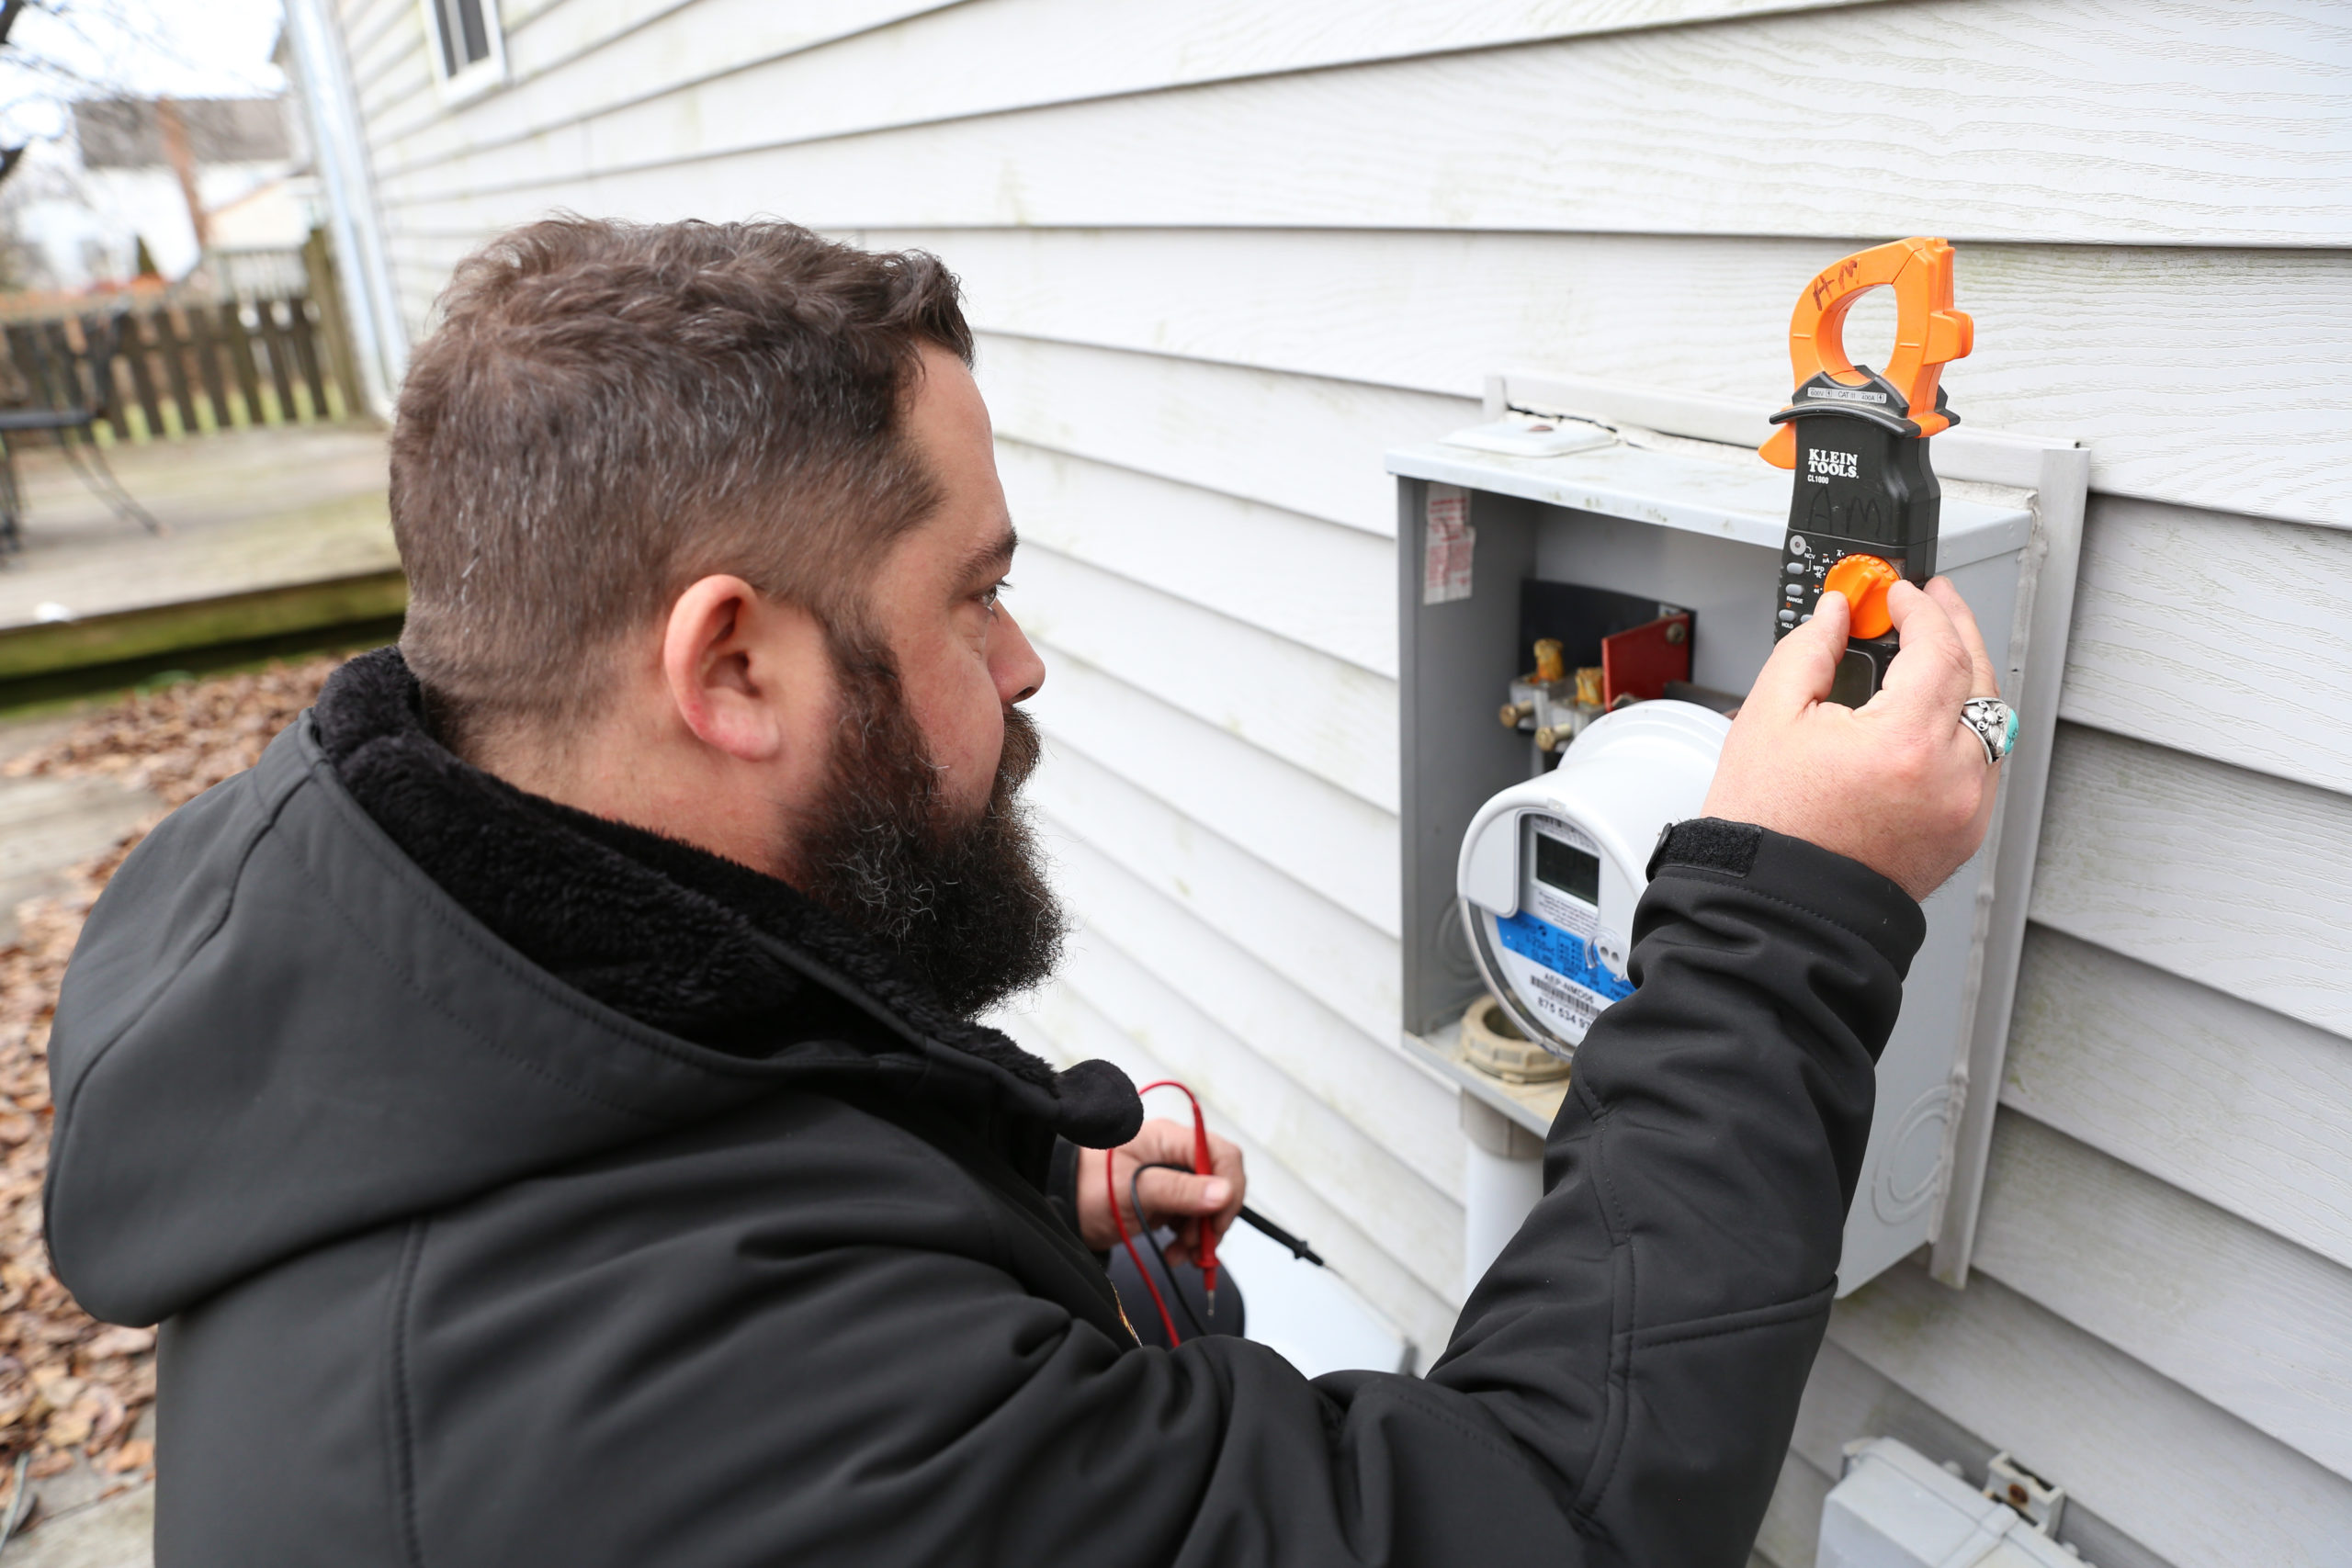 Electrician working on outdoor power box